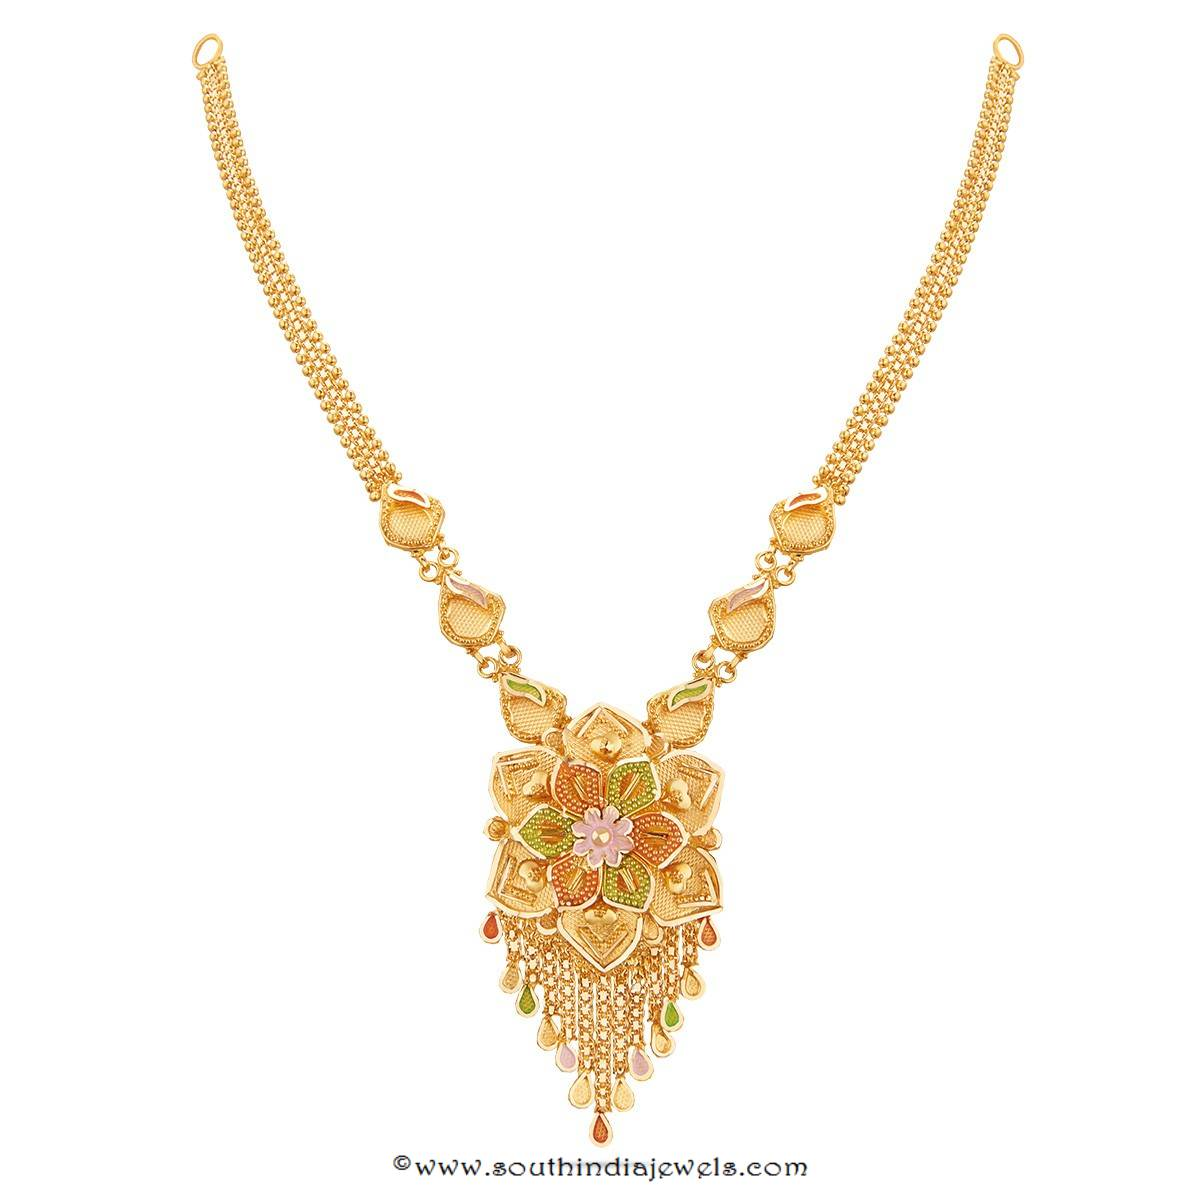 22k gold floral necklace design from thangamayil south